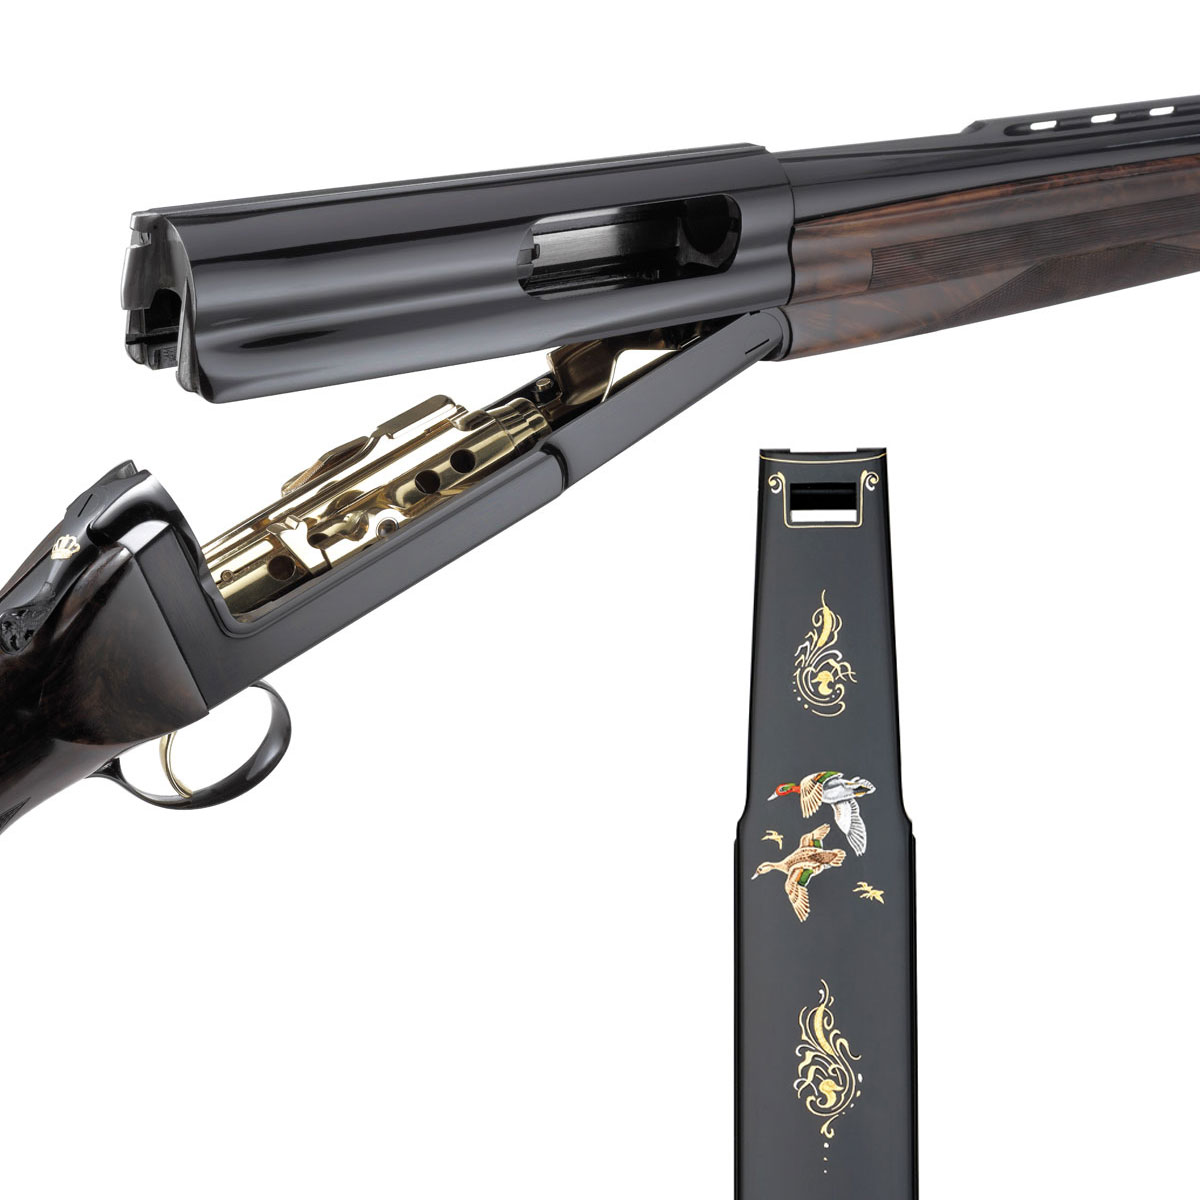 Cosmi Gold Edition semi automatic shotgun